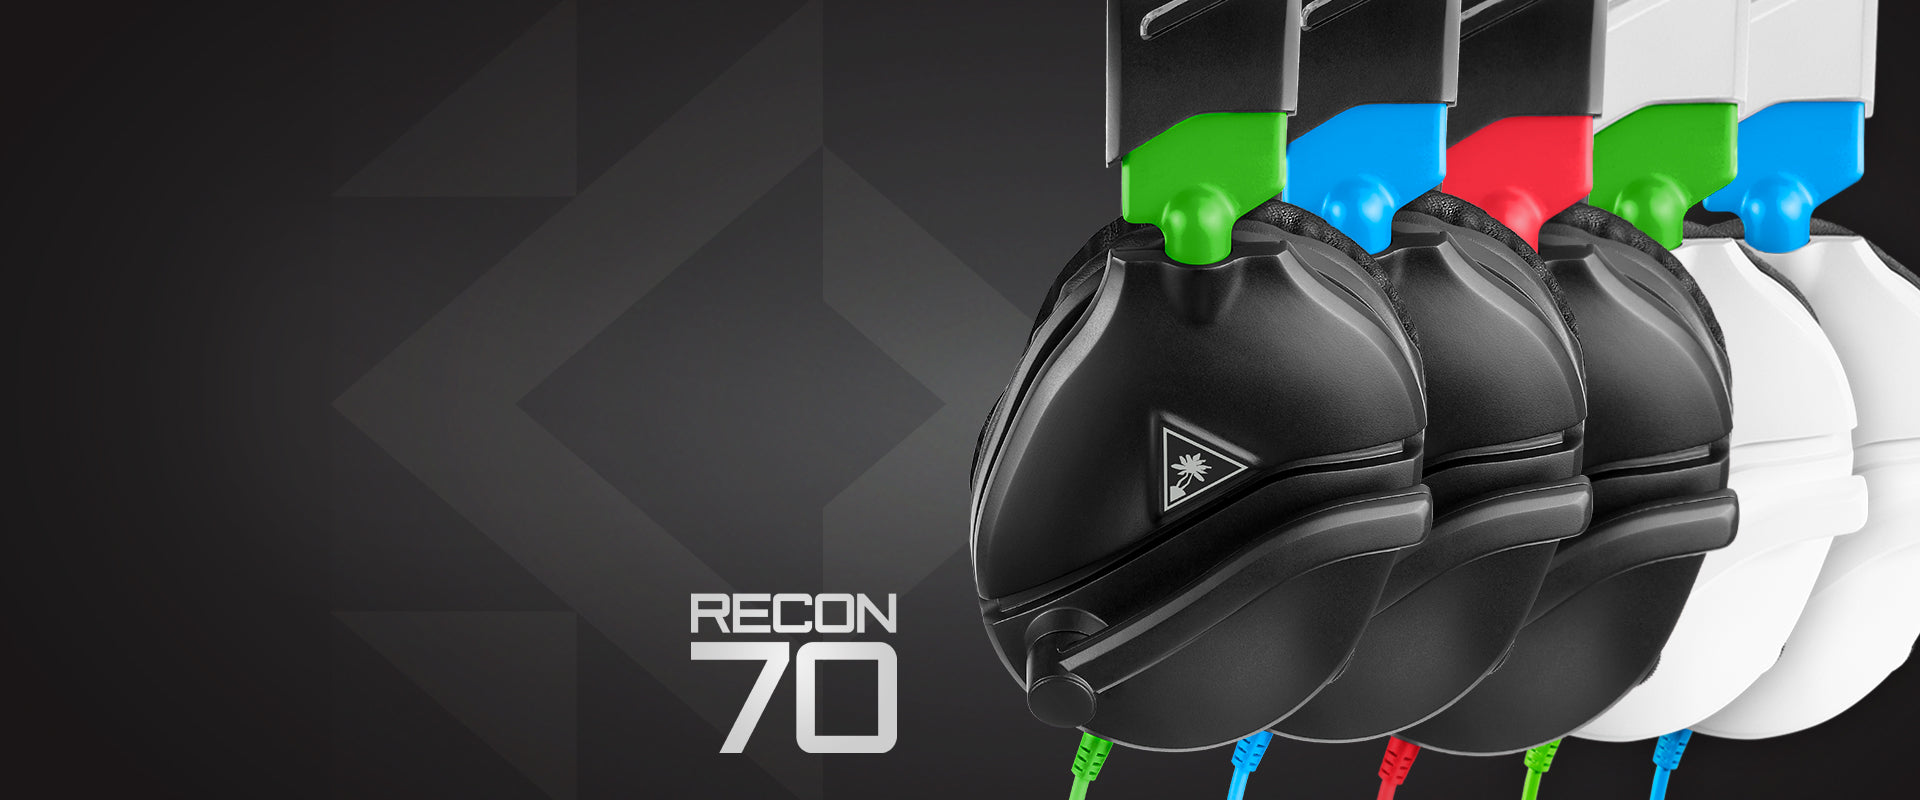 54653872d2a Turtle Beach®  1 Gaming Headsets - Hear Everything. Defeat Everyone.